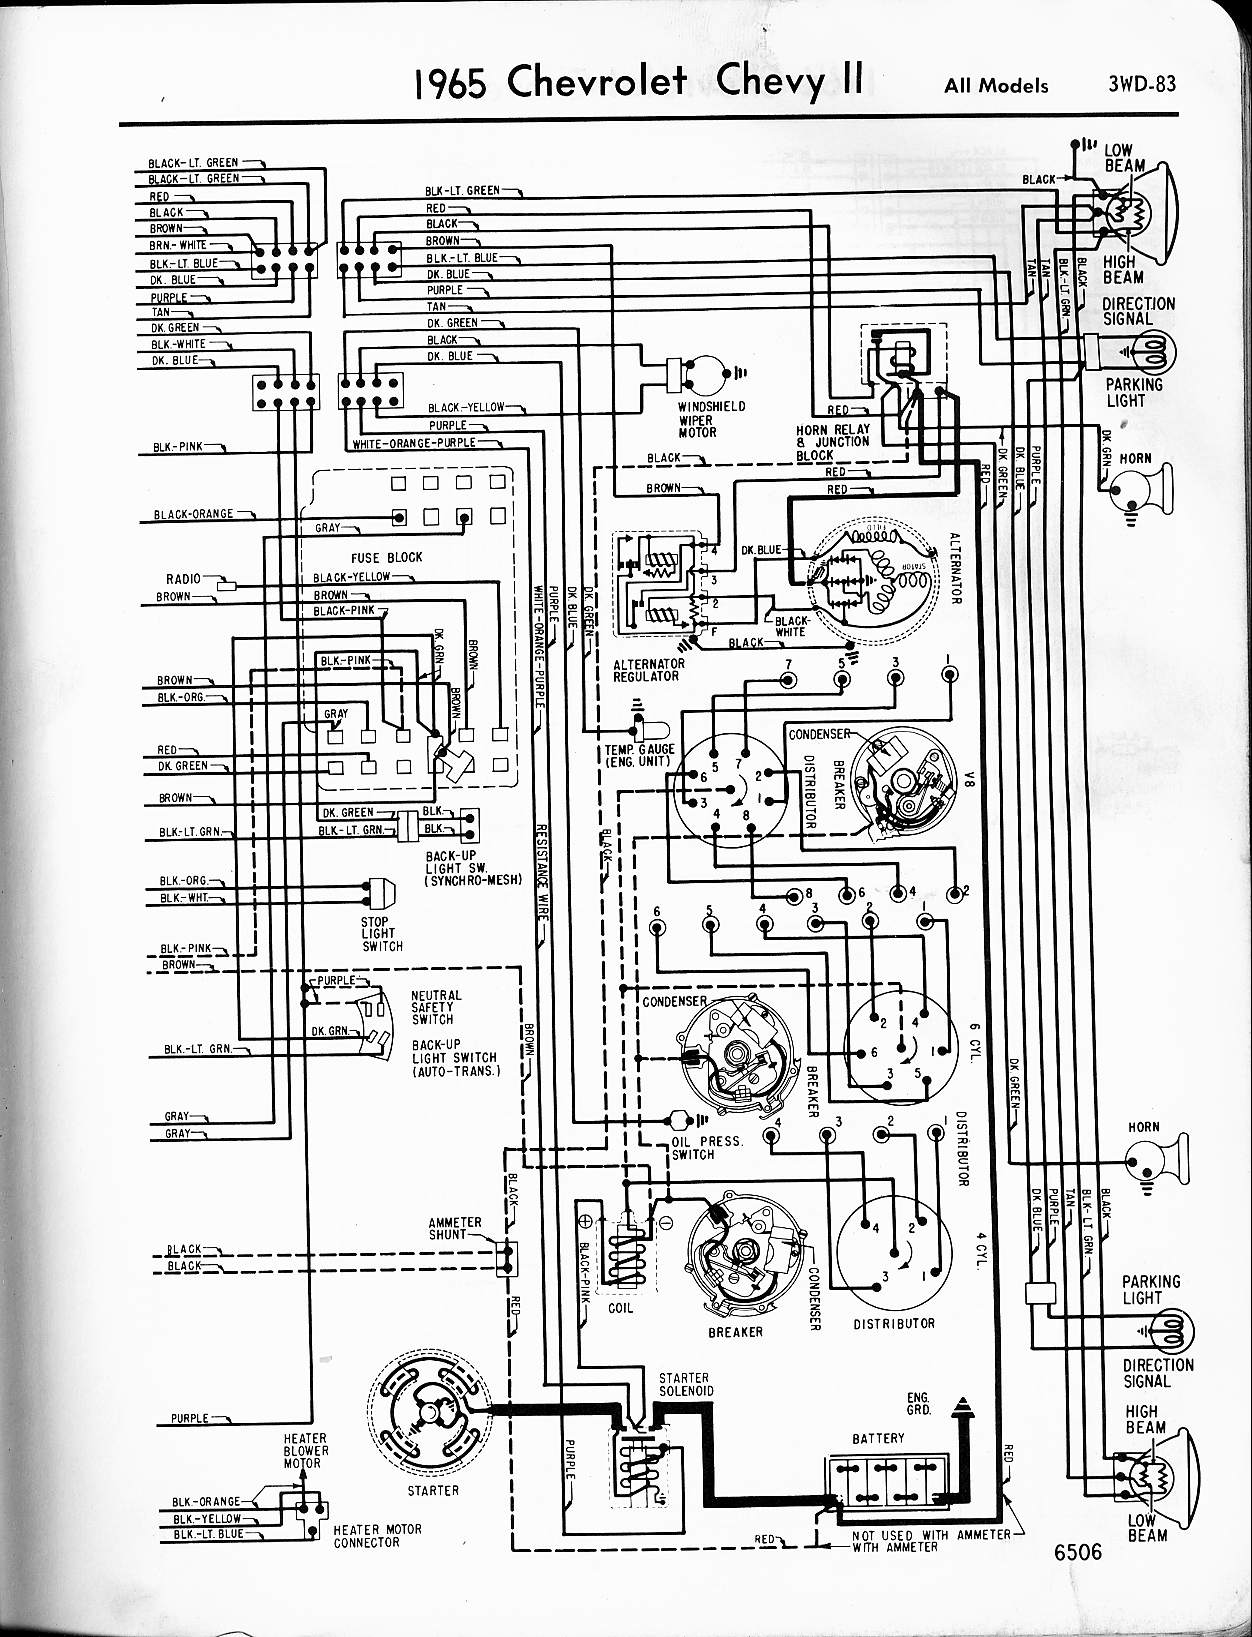 MWireChev65_3WD 083 chevy diagrams 65 mustang tail light wiring diagram at n-0.co